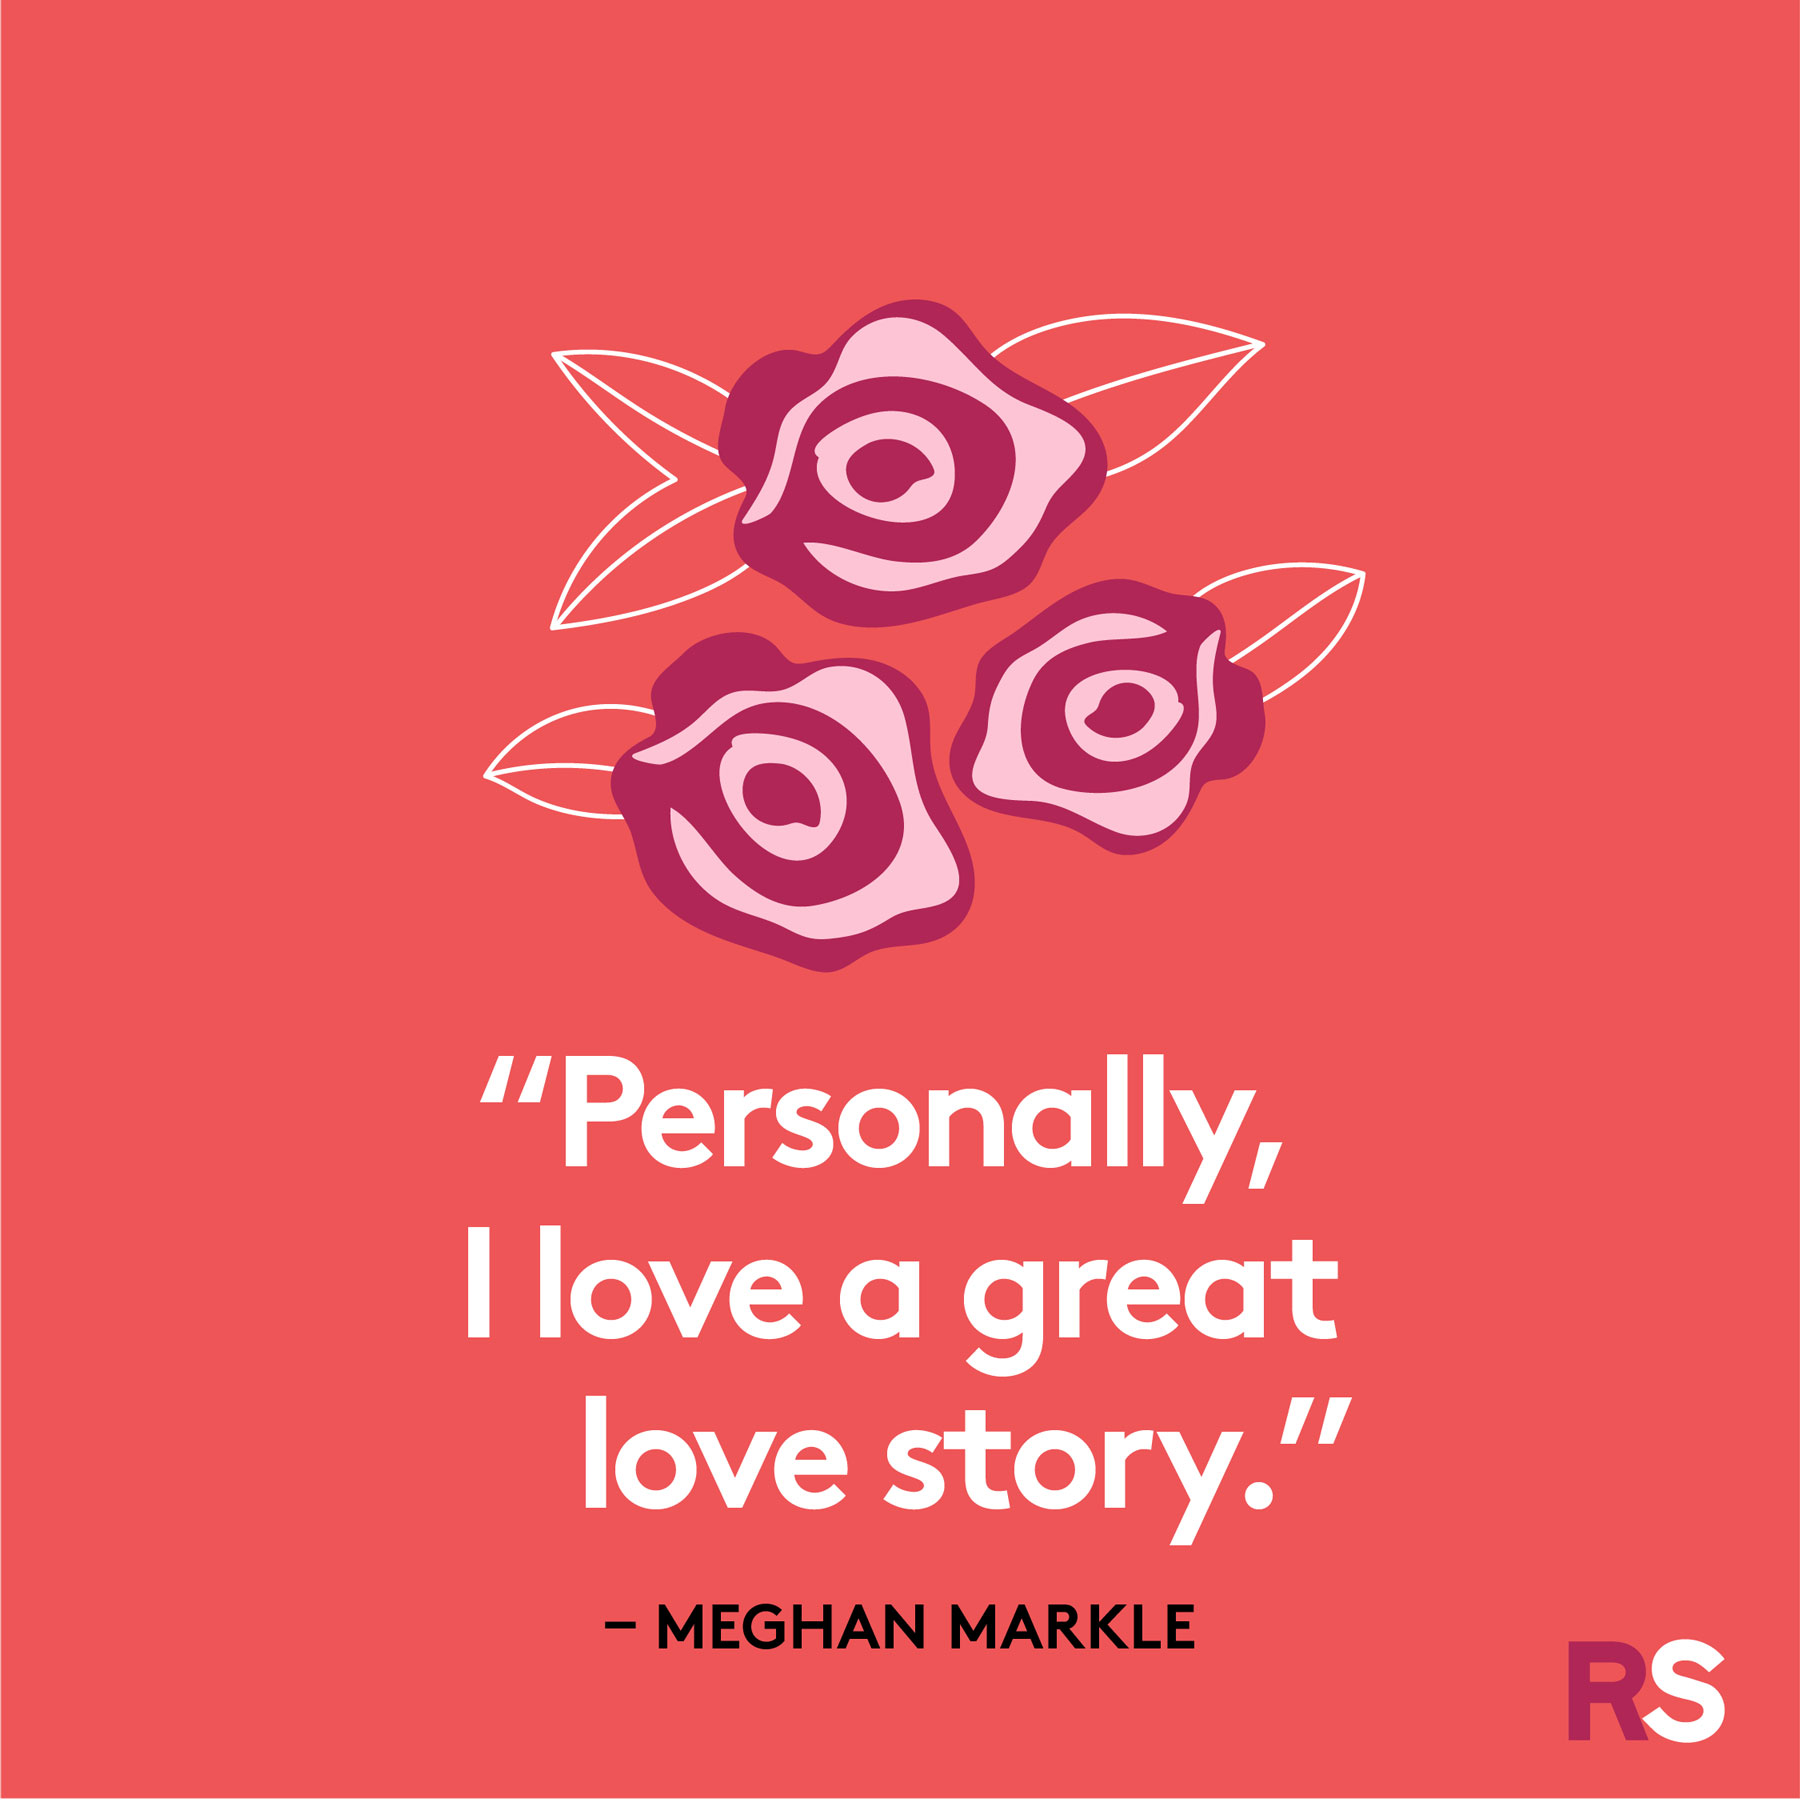 Love quotes, quotes about love - Meghan Markle